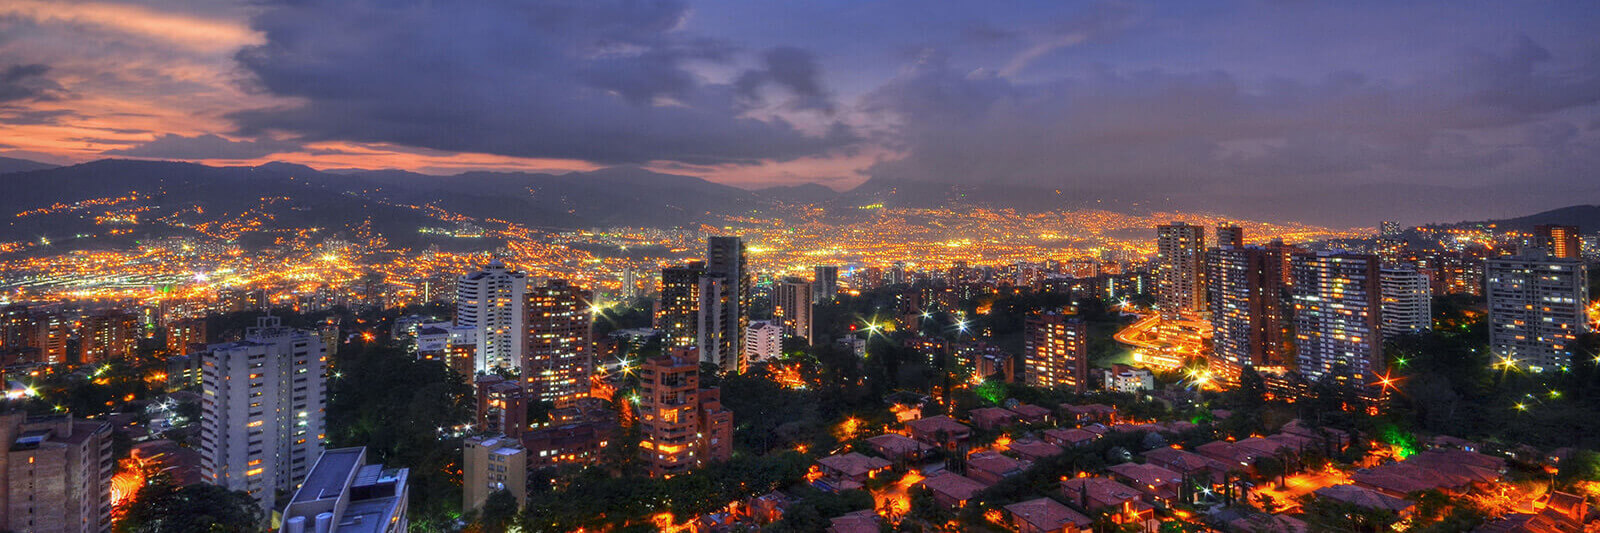 Medellín, Colombia at night